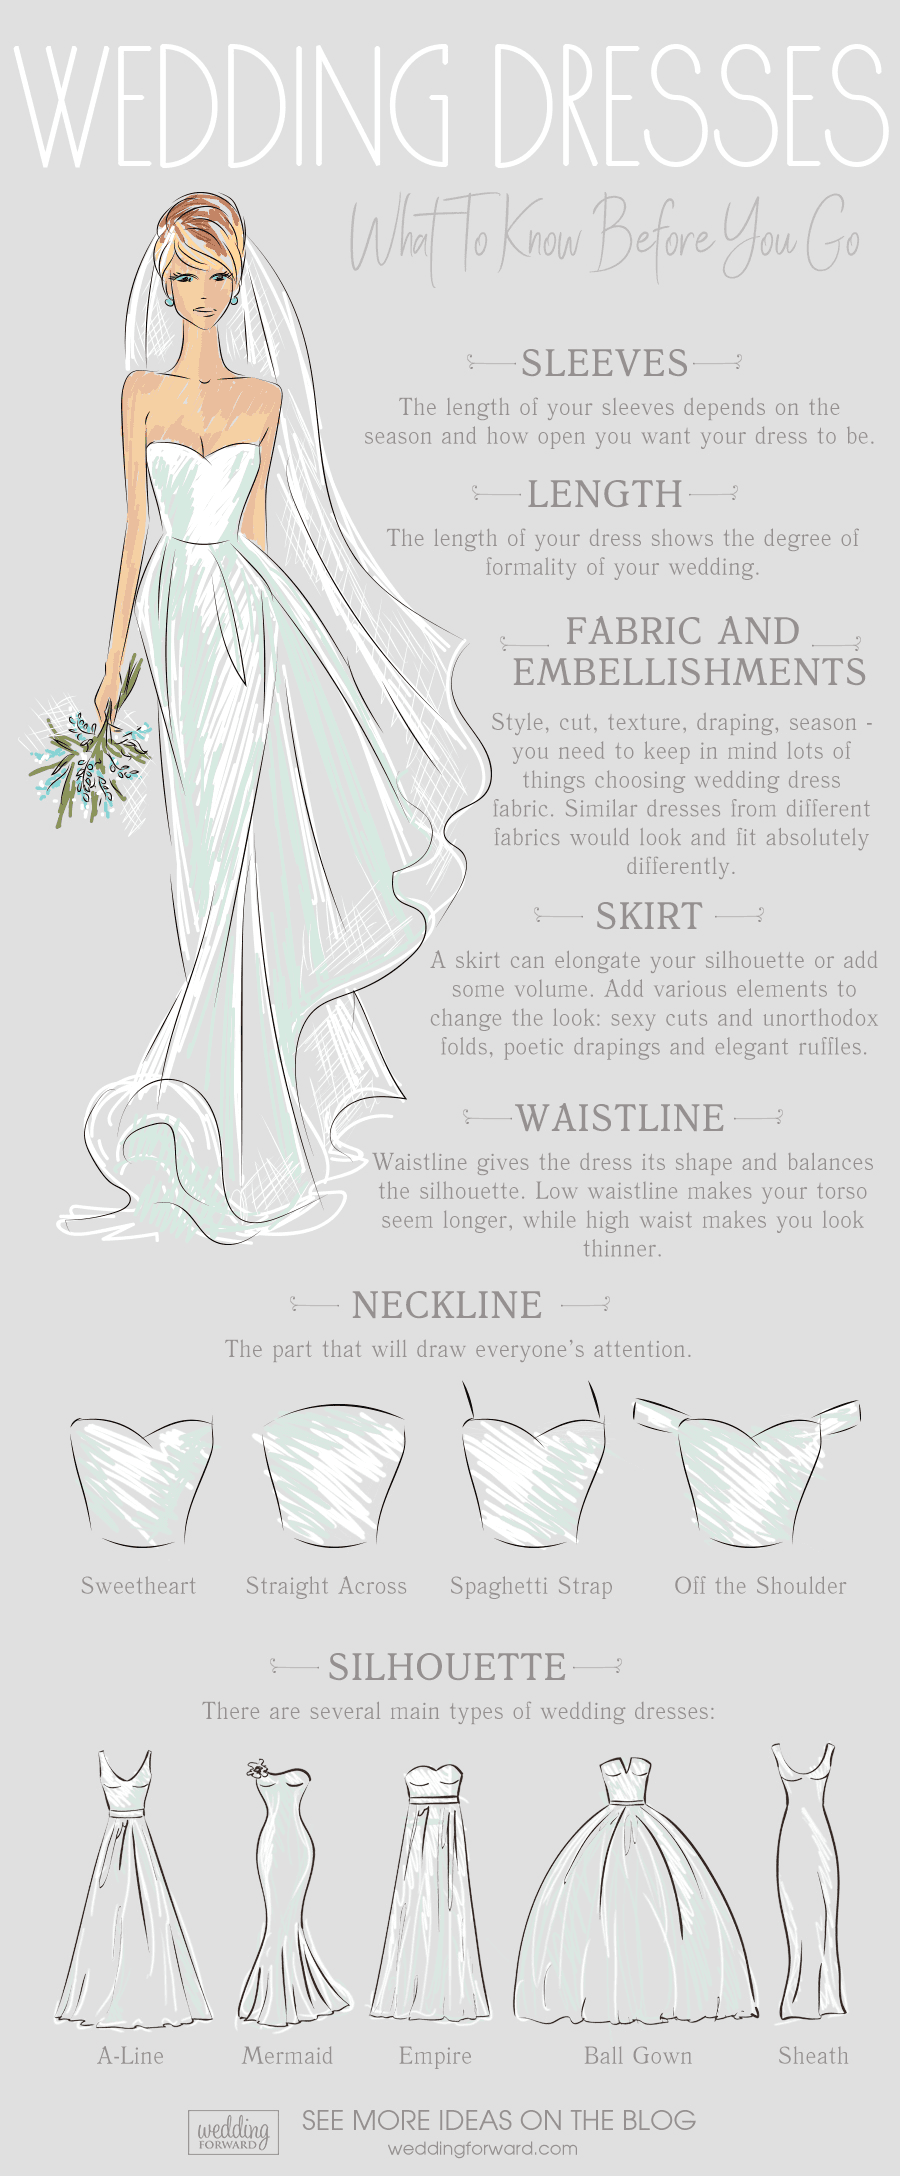 wedding dress shopping guide infographic choose gowns